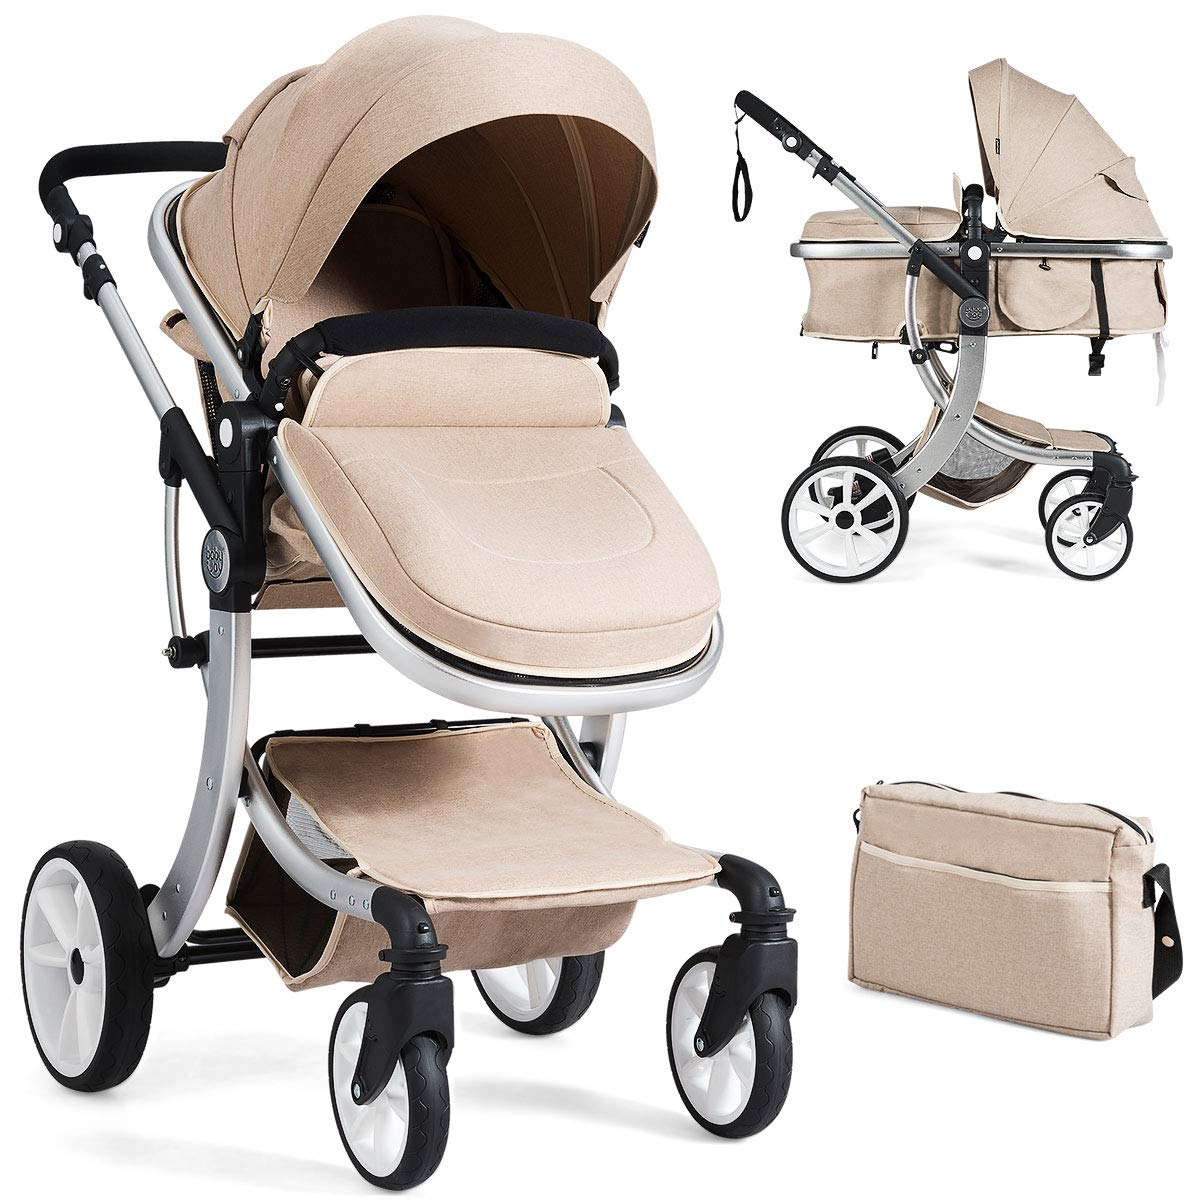 Carrycot Car Seat Travel System 3 in 1 /& 2 in1 Buggy Baby Stroller Baby Carriage